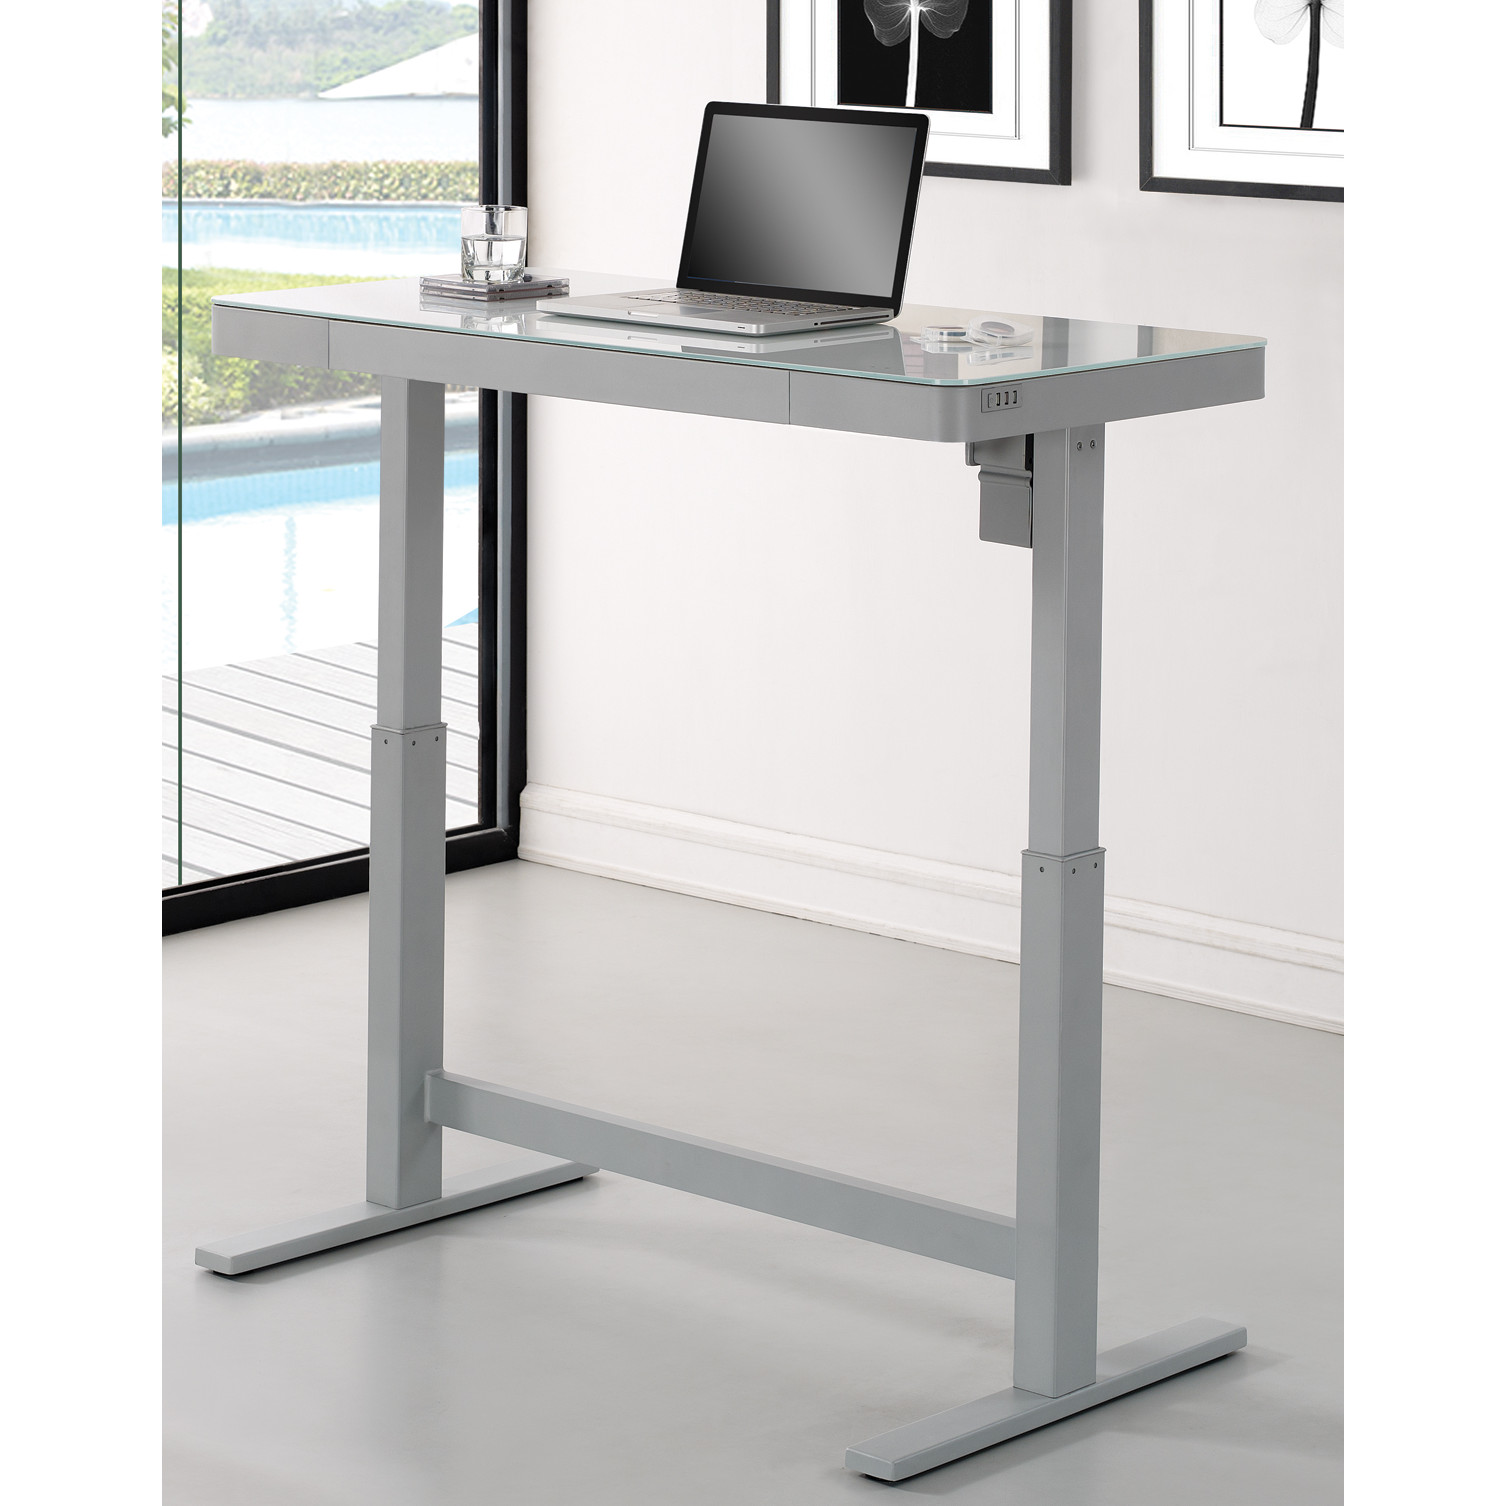 Luxury Wildon Home u0026reg; Adjustable Standing Desk adjustable standing desk